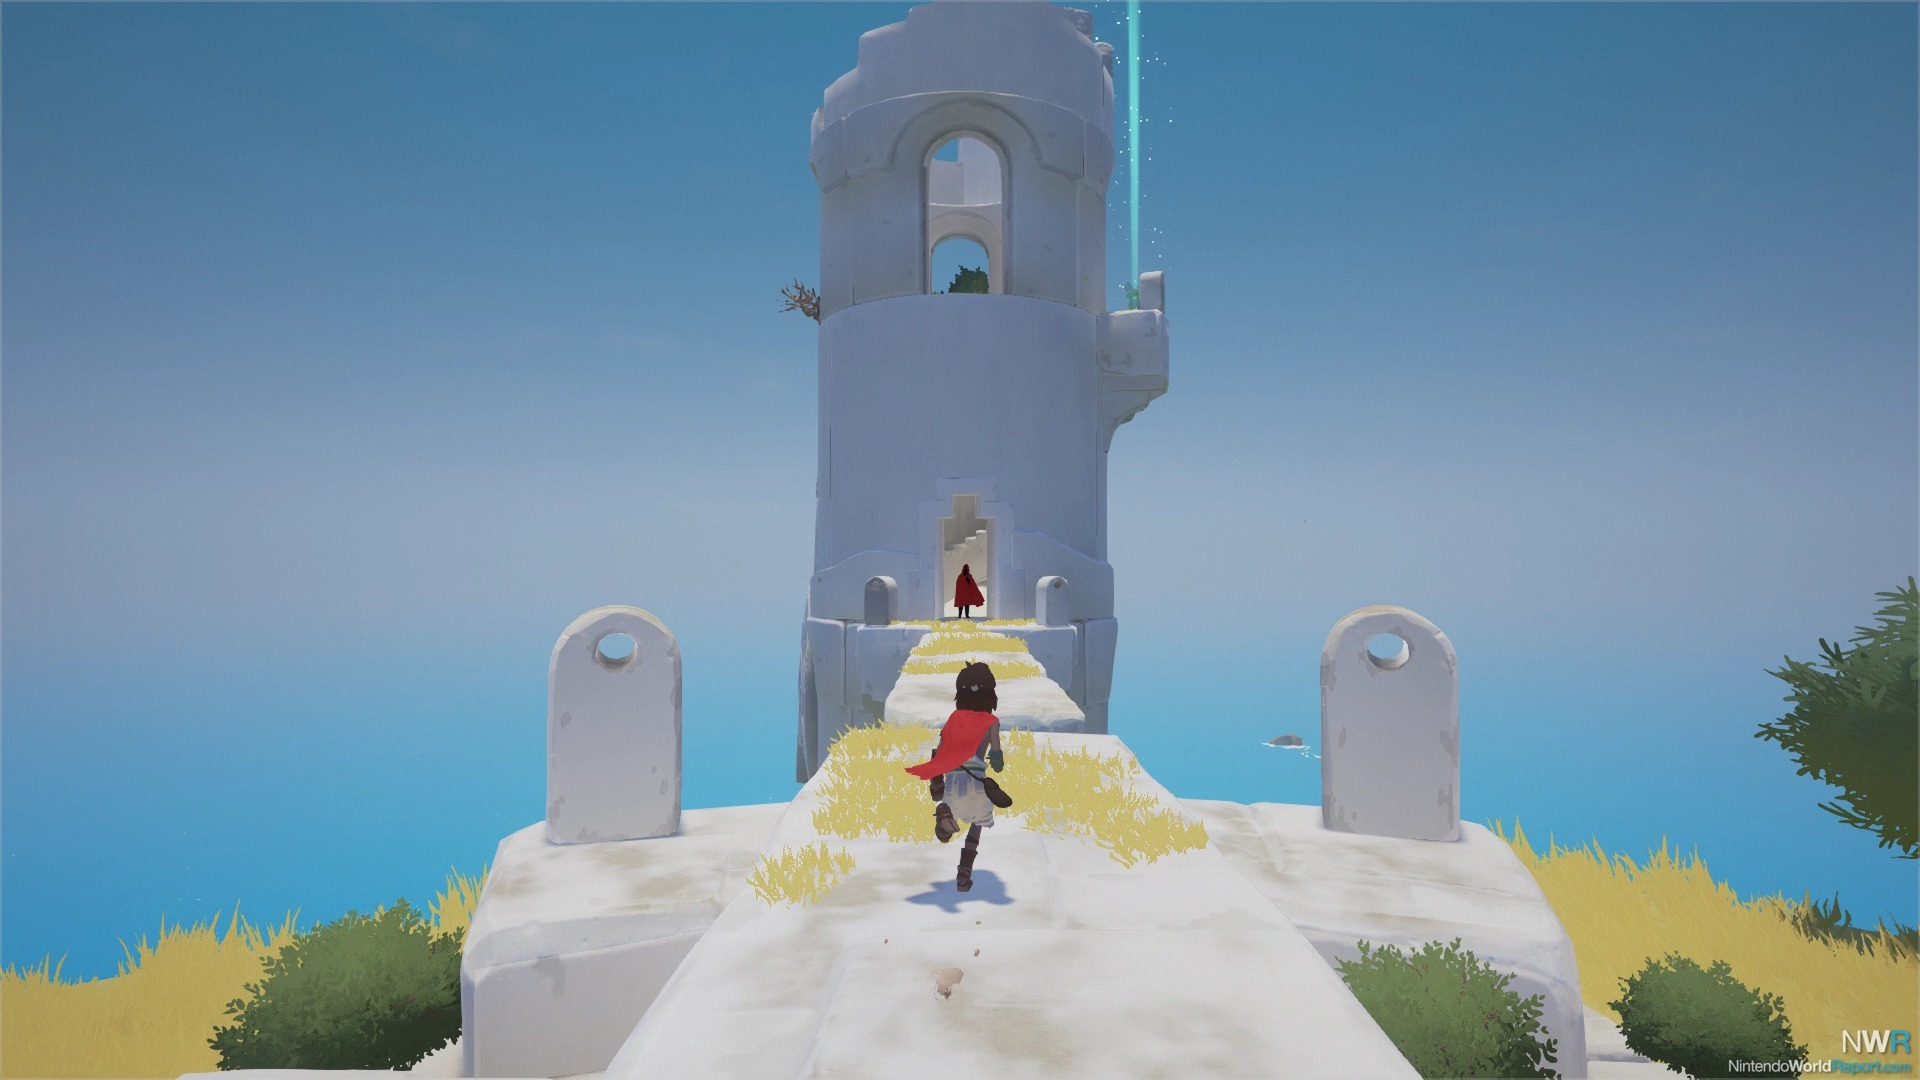 It's Unclear Why Indie Game Rime Costs $10 More On Switch